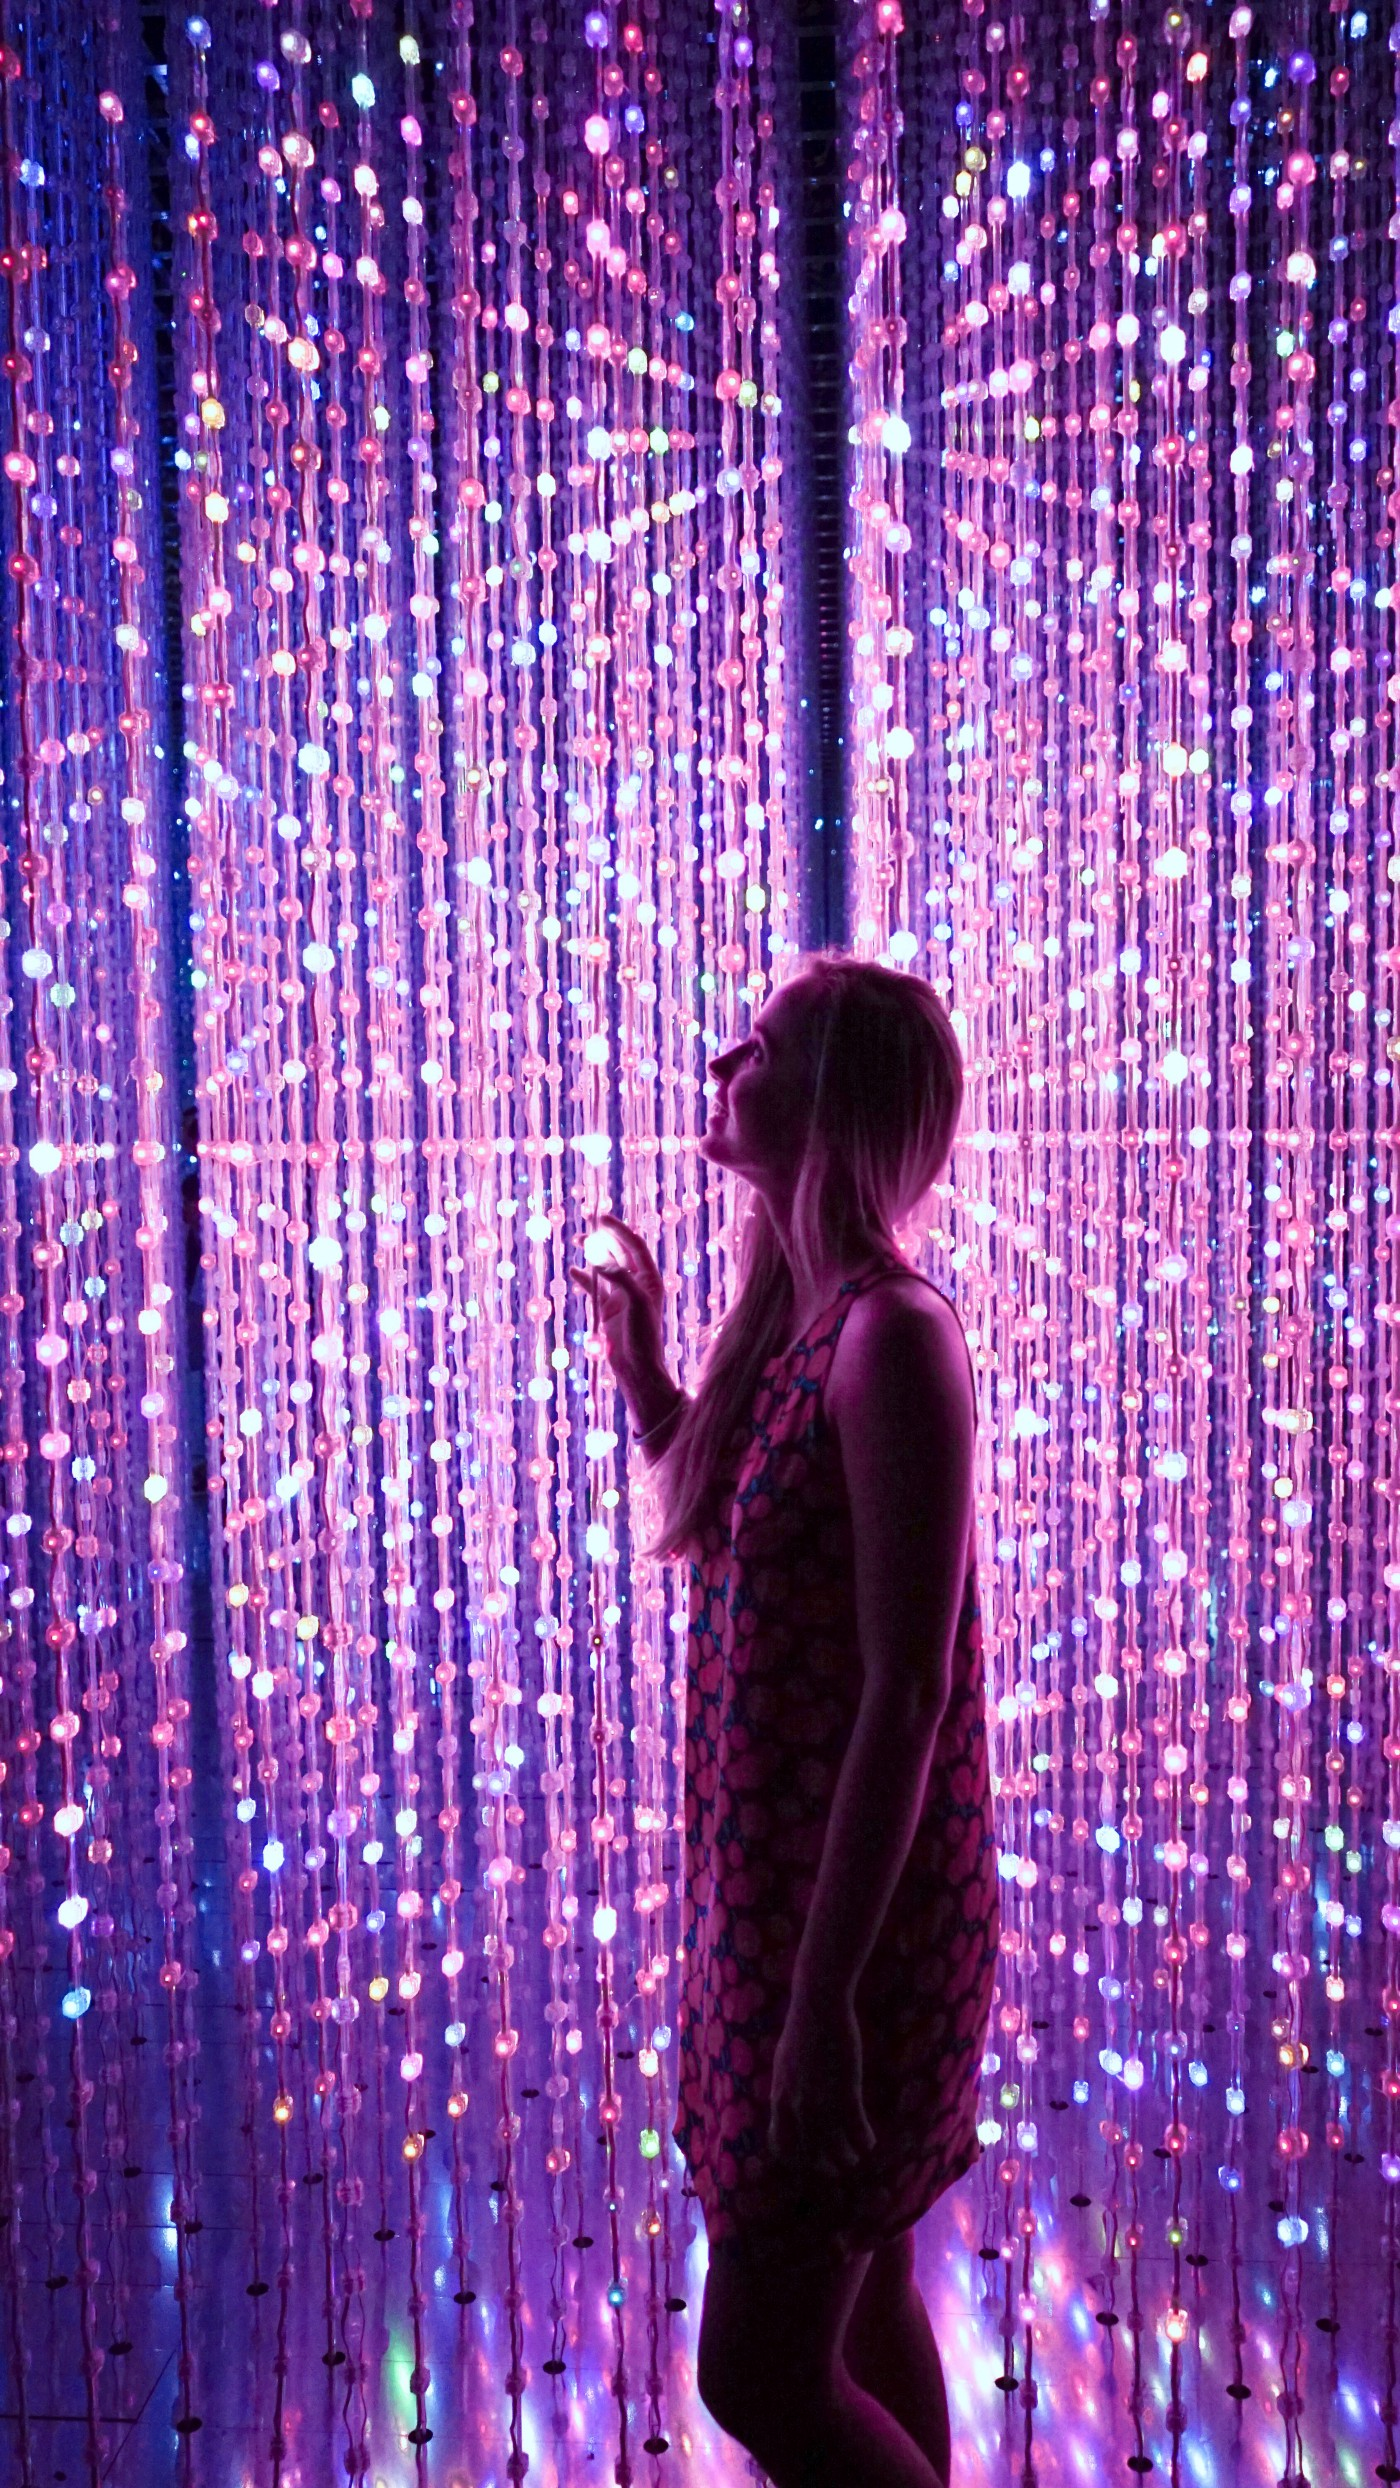 Smiling girl in a room that sparkles with gentle purple light.